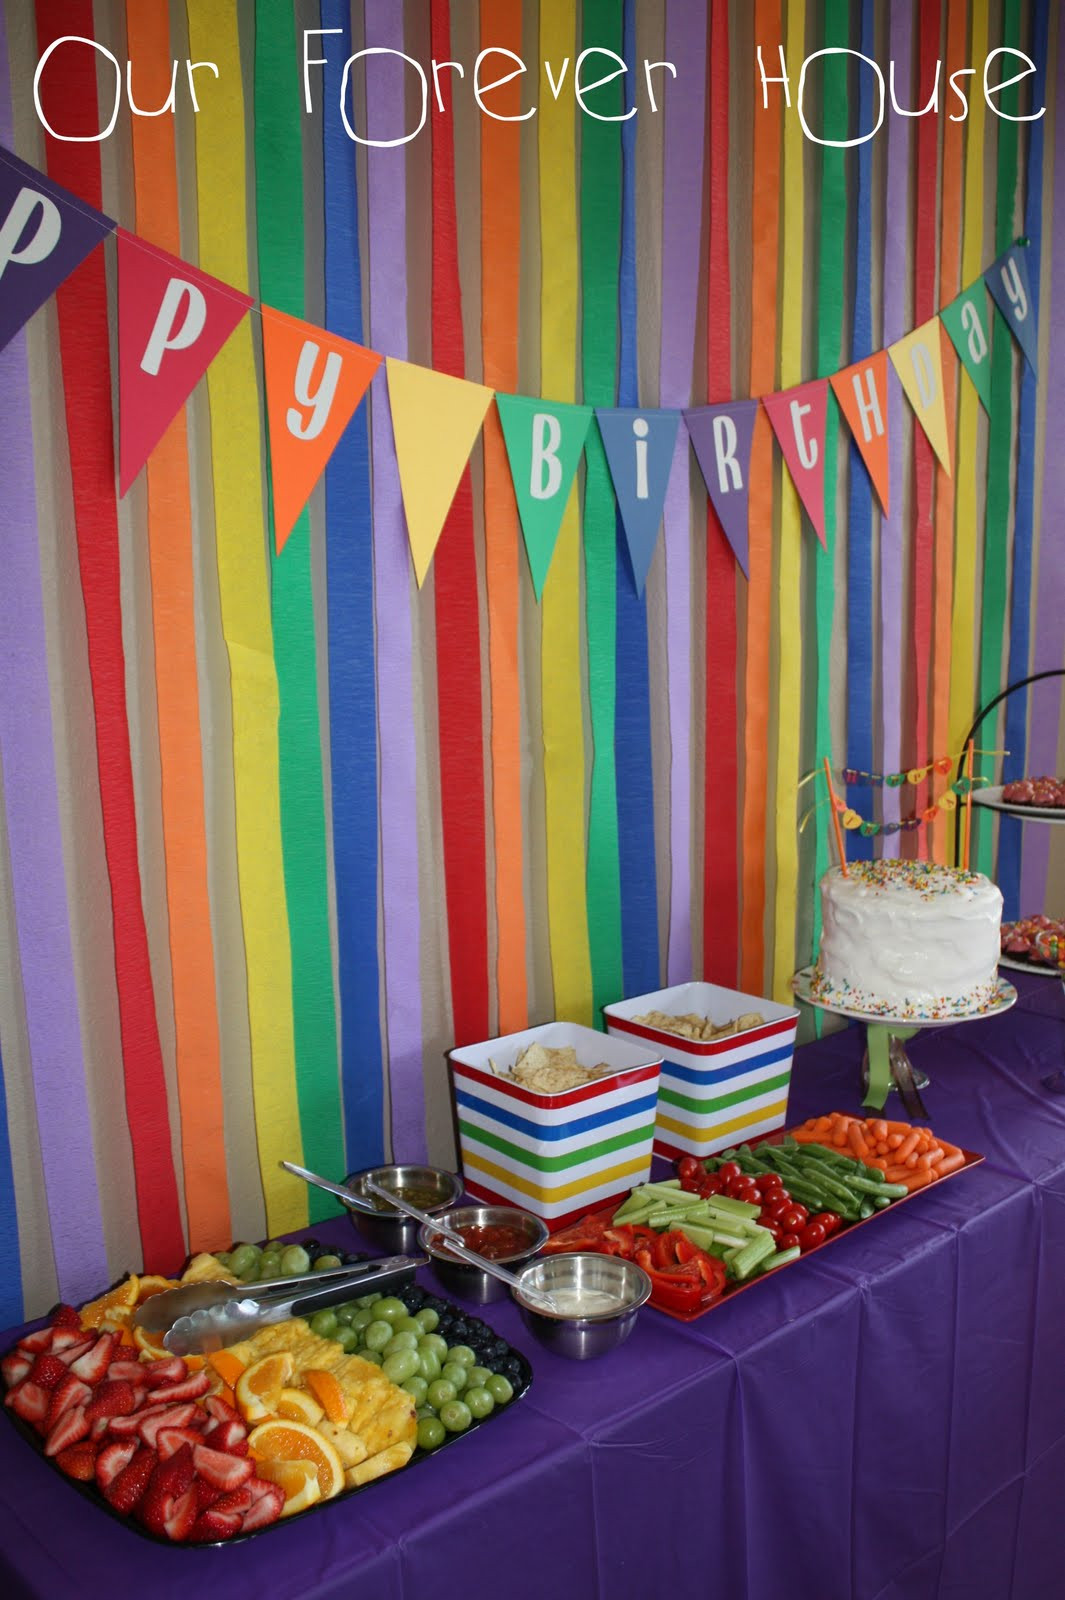 Best ideas about Rainbow Birthday Decorations . Save or Pin Our Forever House Rainbow Pool Party Part 2 Now.